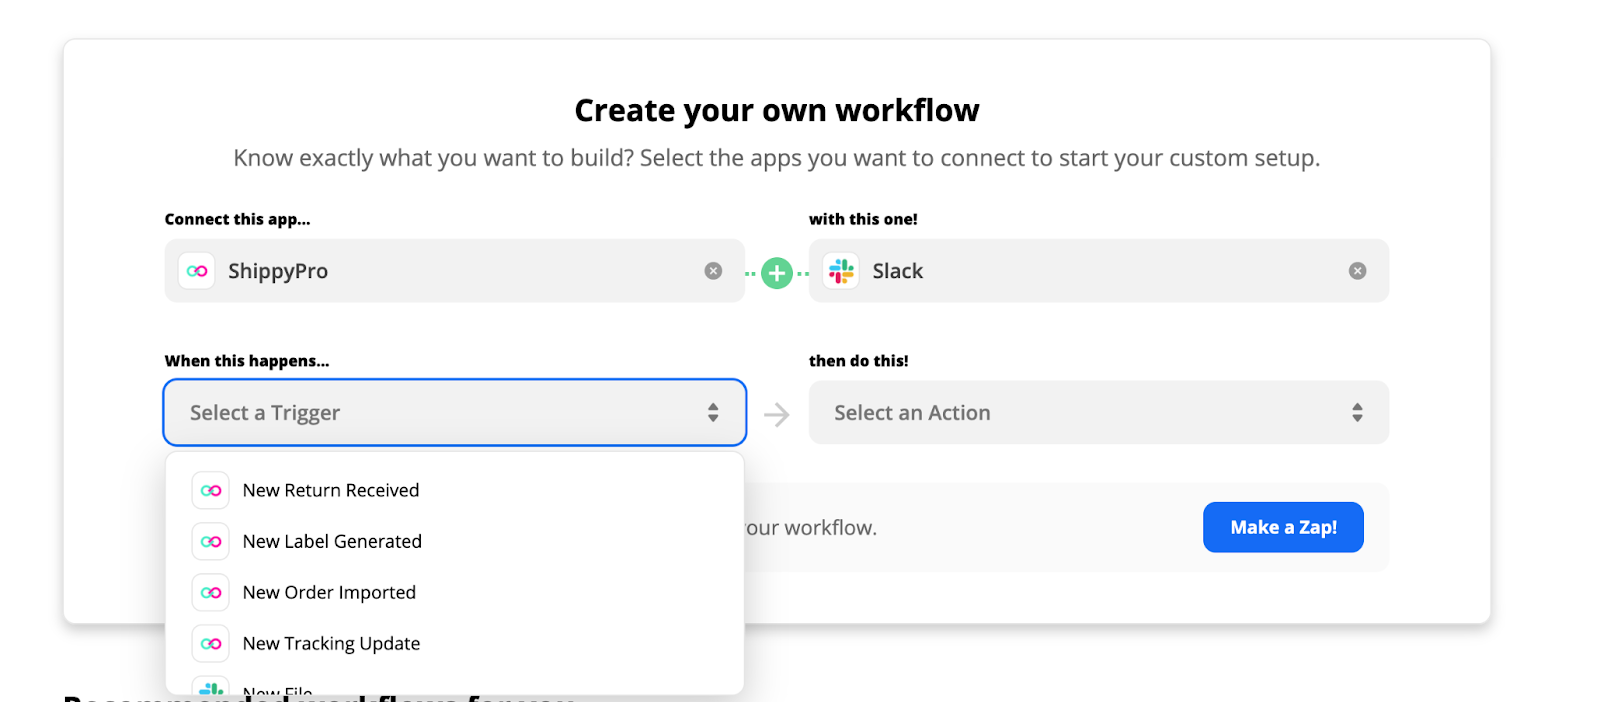 Choose a trigger and an action for your Zapier workflow (ShippyPro + Slack)